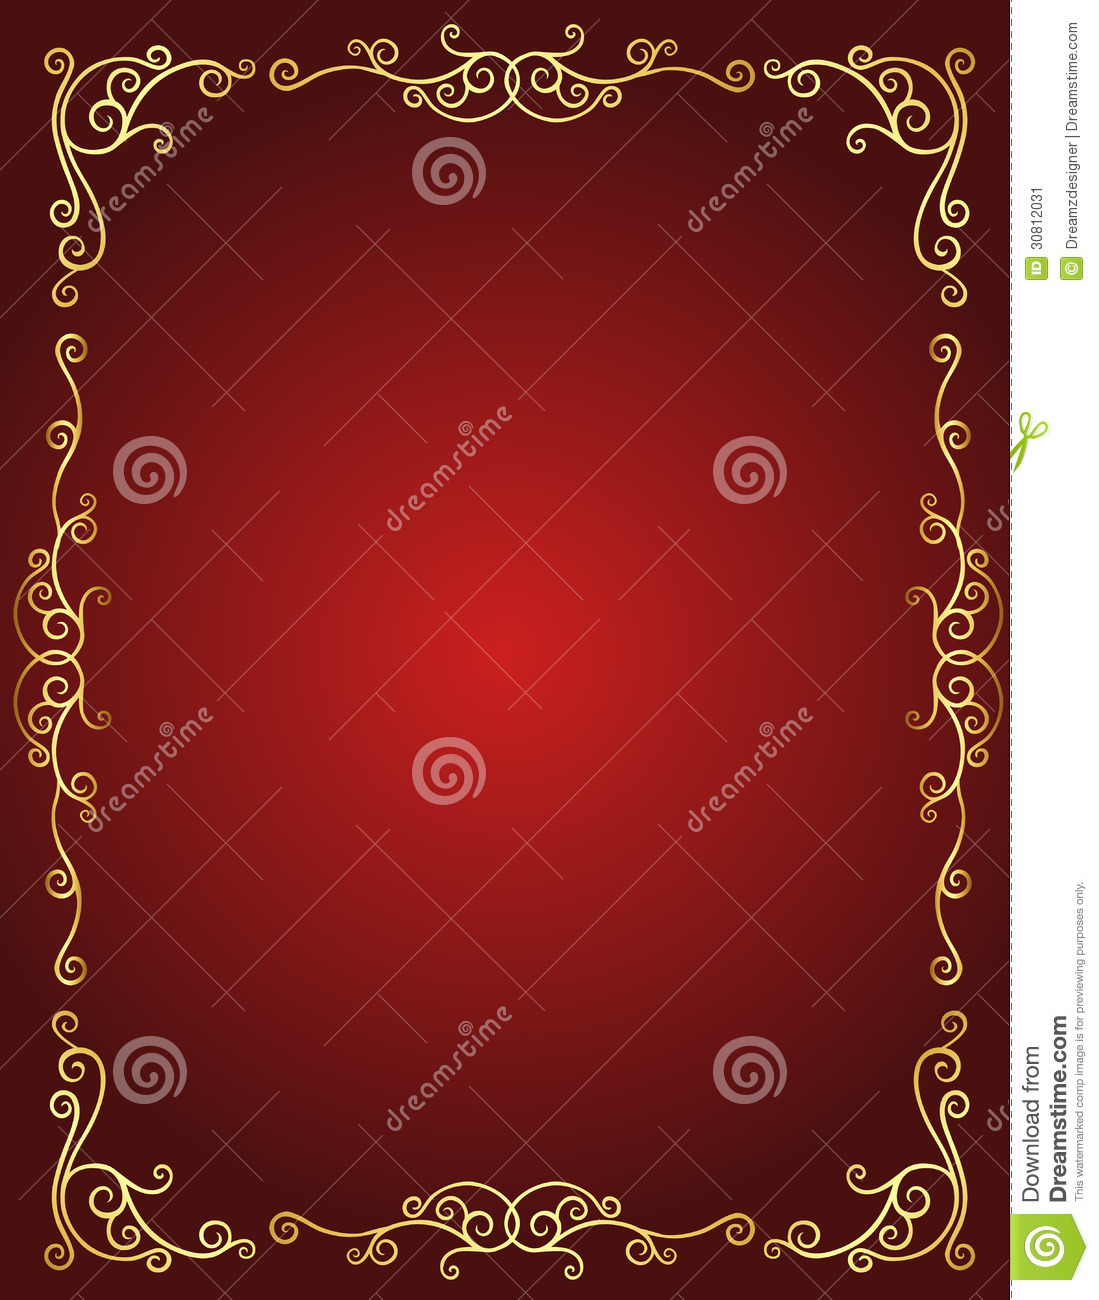 Wedding invitation border in red and gold stock vector download wedding invitation border in red and gold stock vector illustration of design business stopboris Images